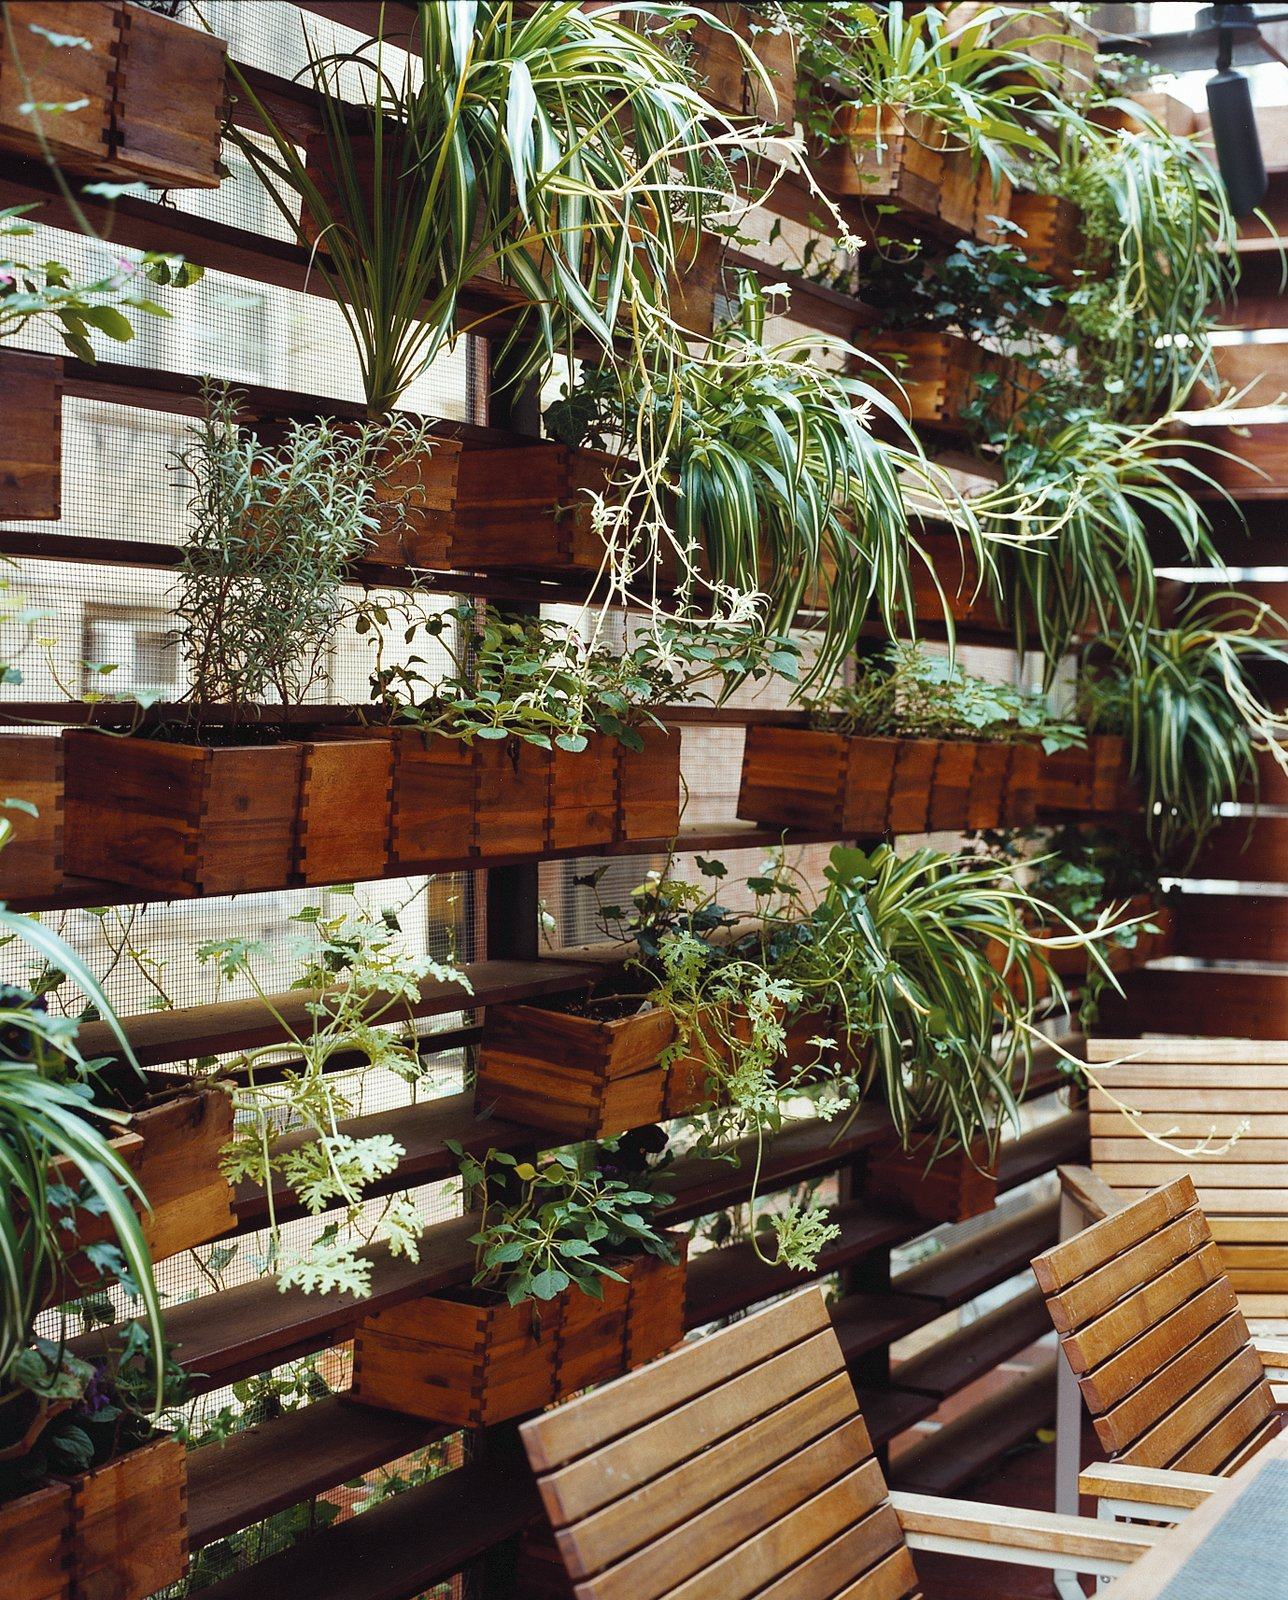 Boxes of herbs and spider plants adorn one side of the patio.  Photo 9 of 11 in Outdoor Living in NYC